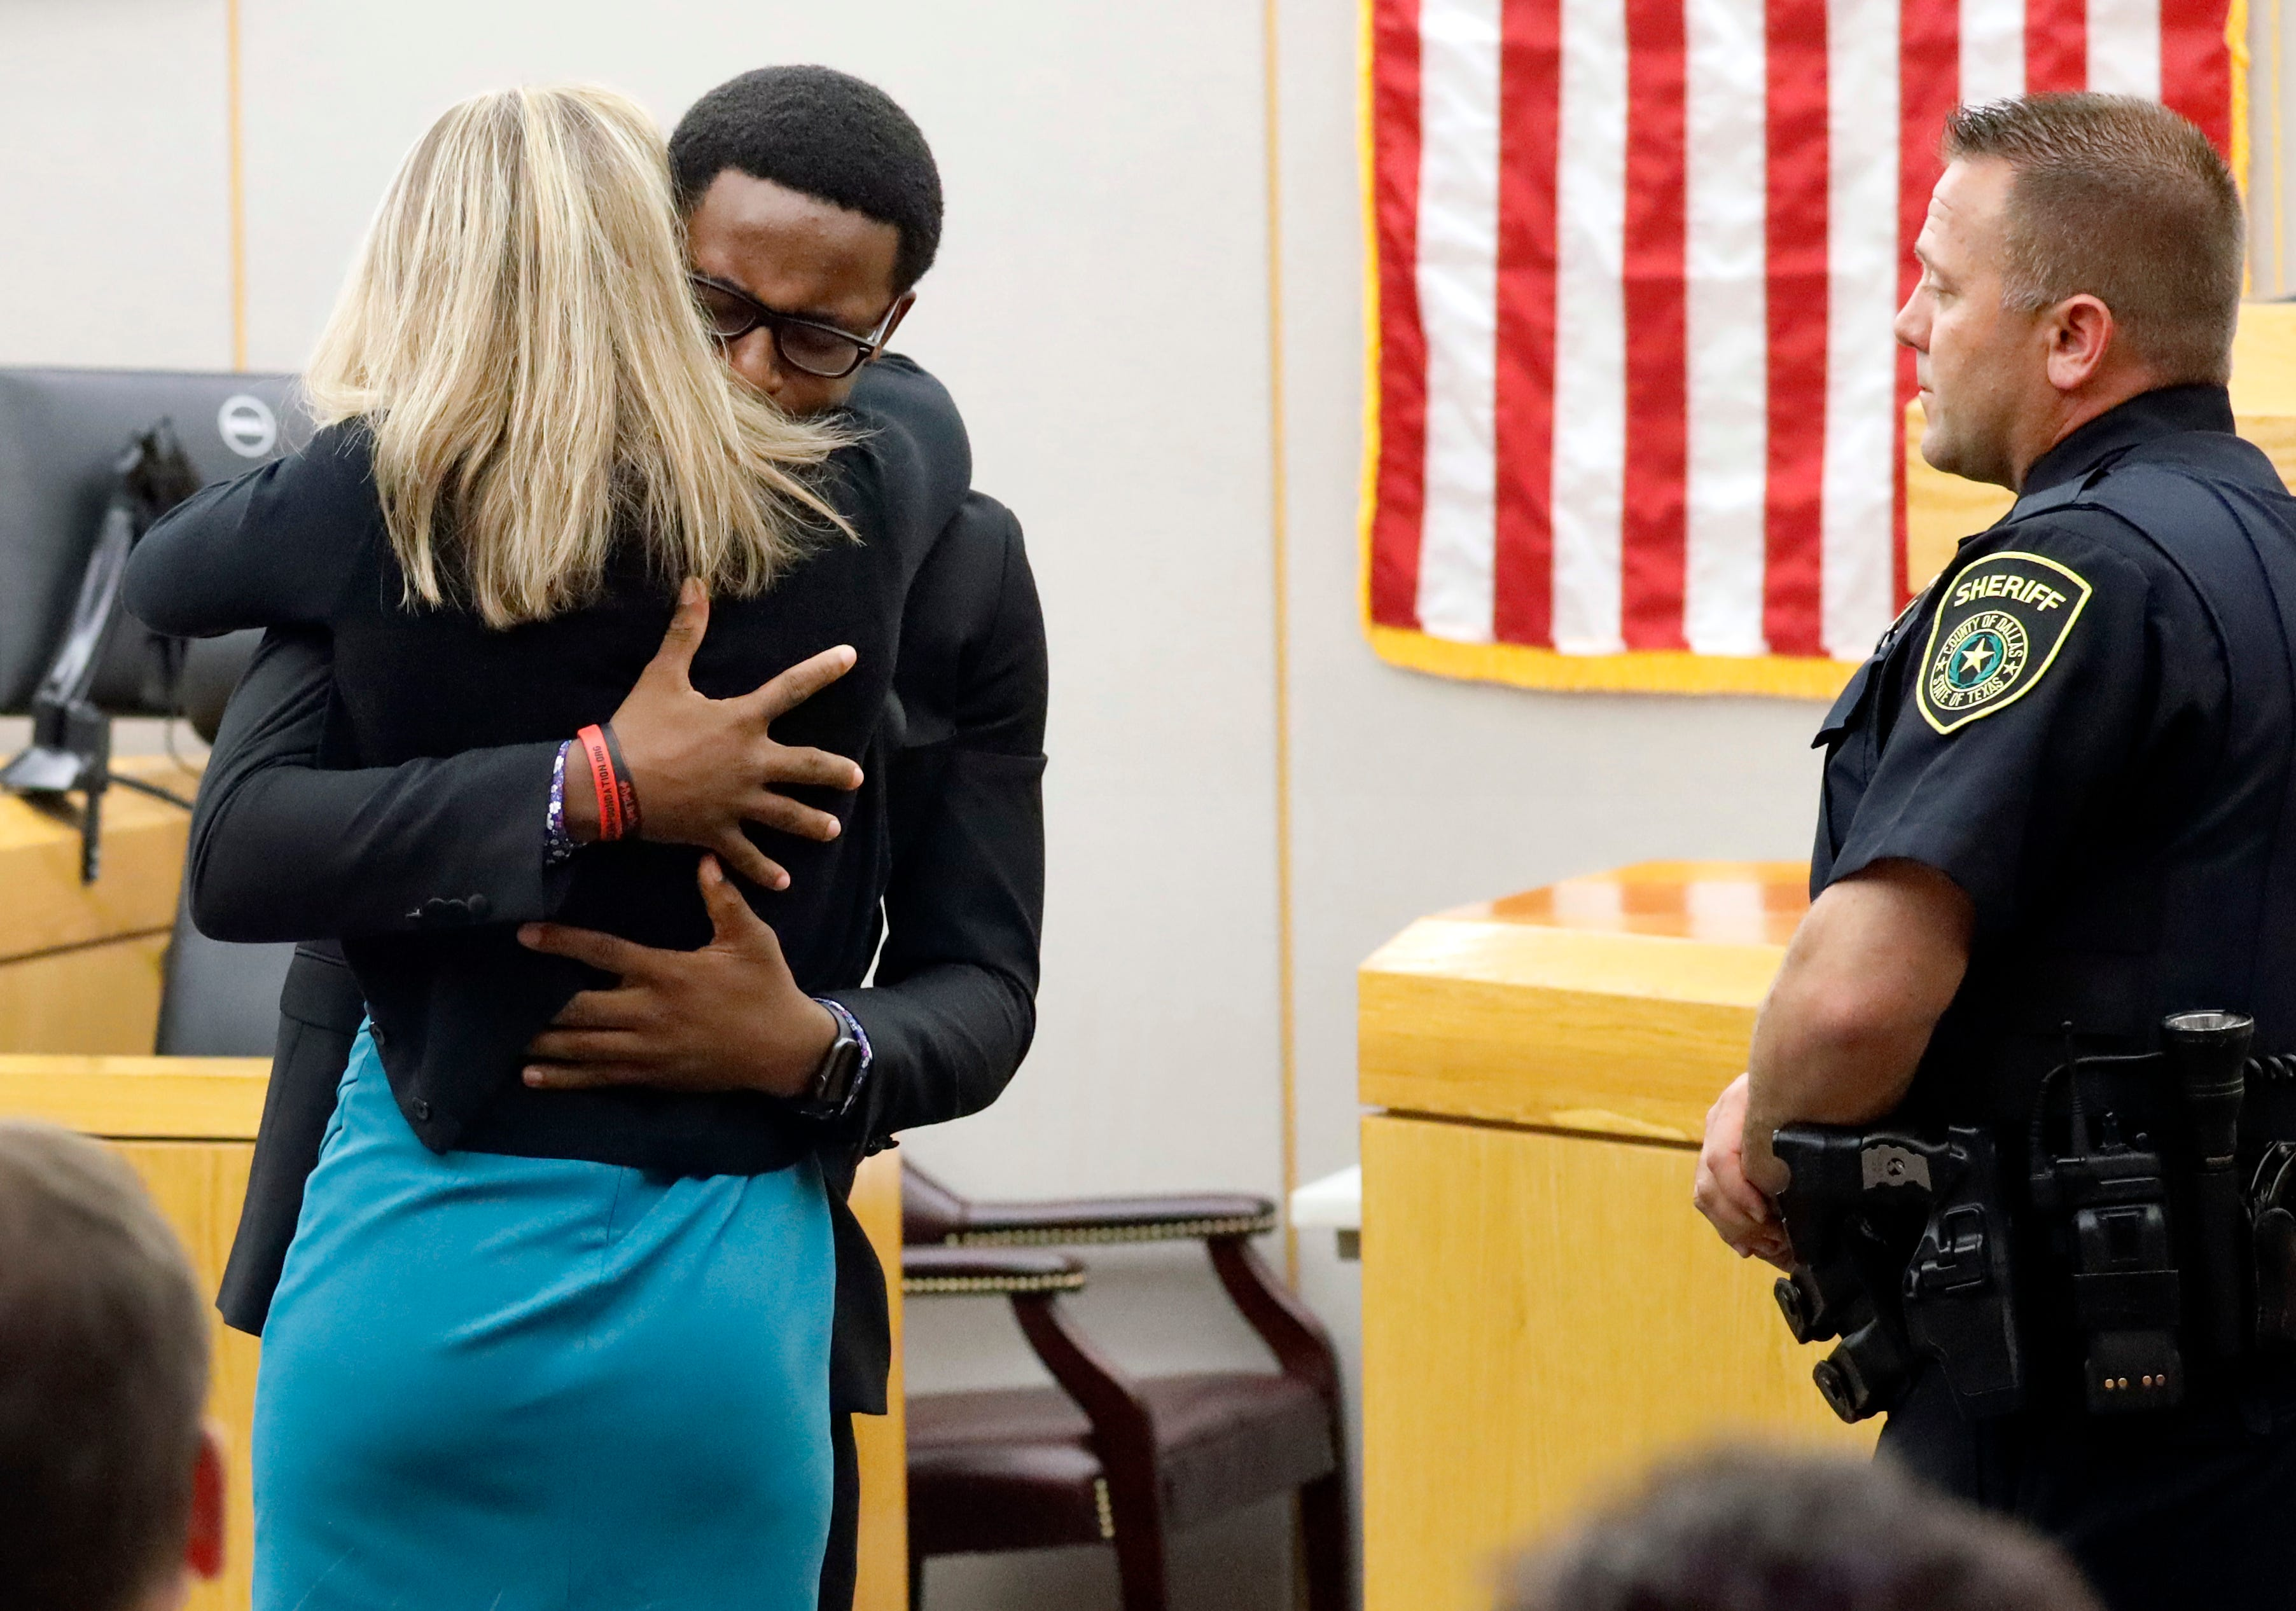 'I want the best for you': Botham Jean's brother hugs Amber Guyger in emotional courtroom scene